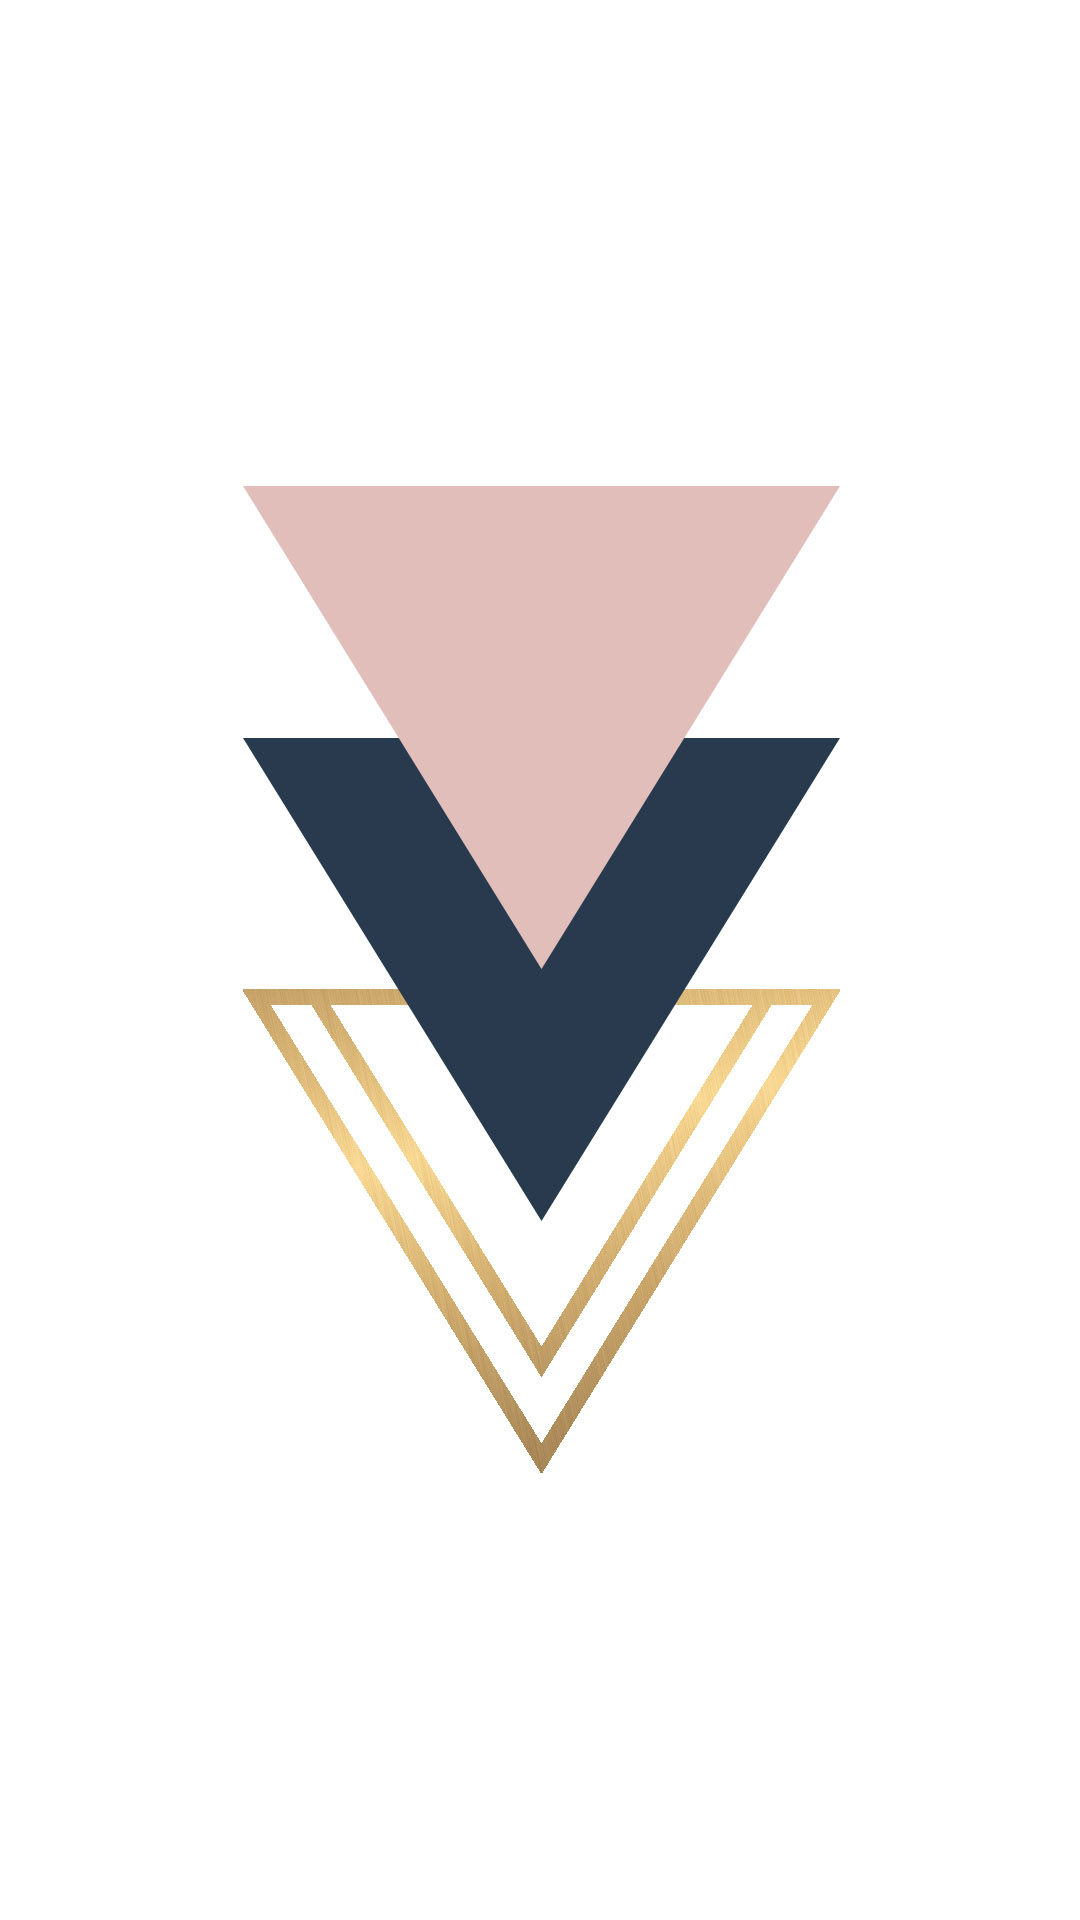 Blush-Navy-gold-foil-triangle-geo-shapes-you-can-download-for-free-on-the-blog-For-any-de-wallpaper-wp3403428